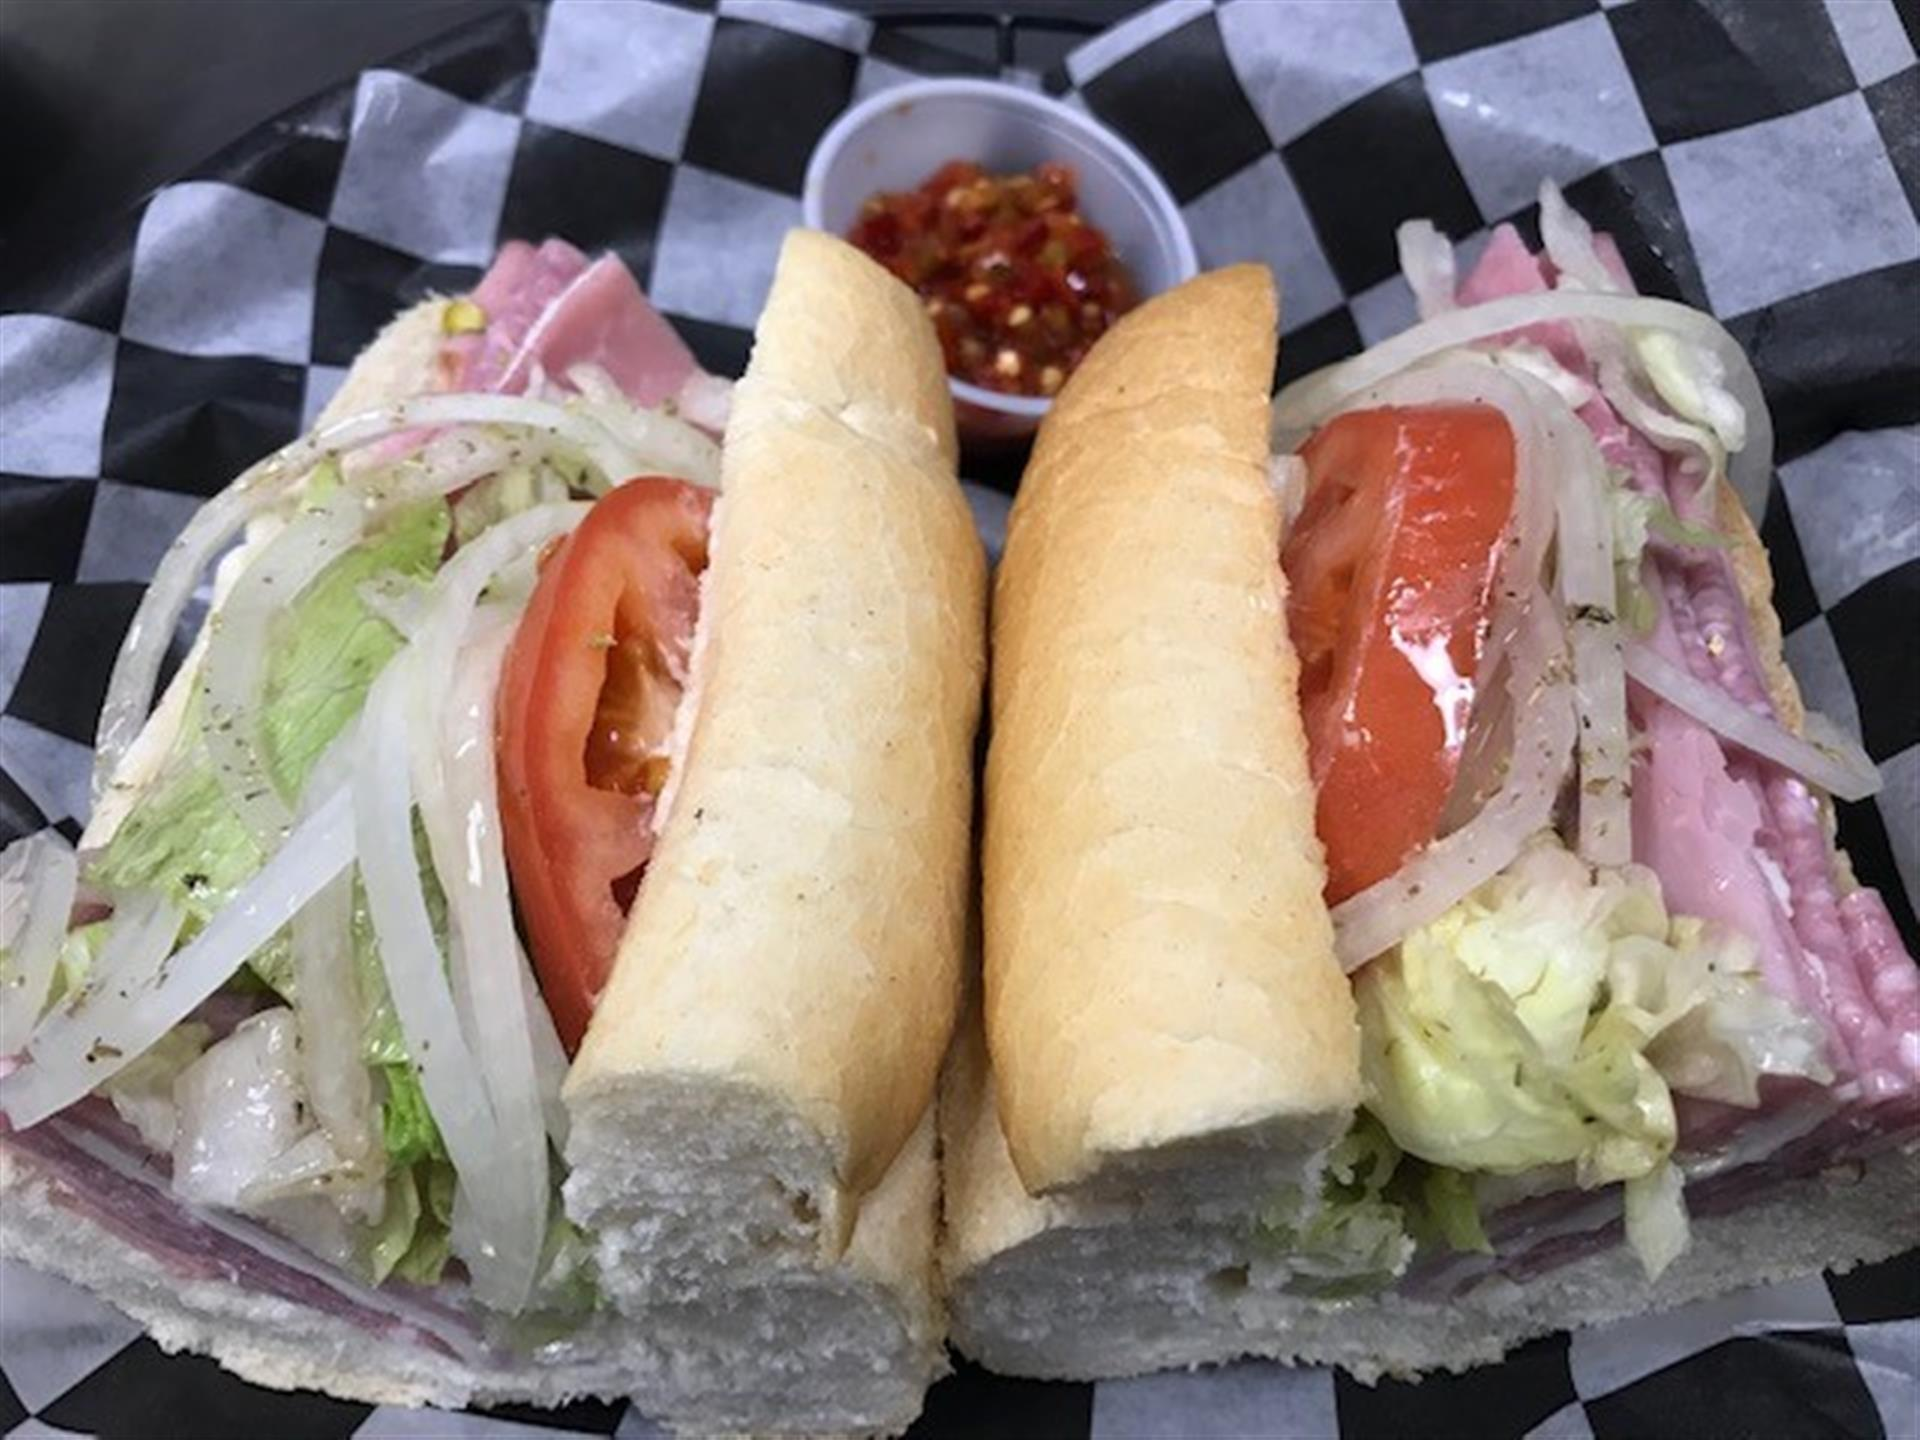 Ham & Provolone Sub. Deluxe ham, raw onions, mayo, lettuce, tomatoes & red hot peppers